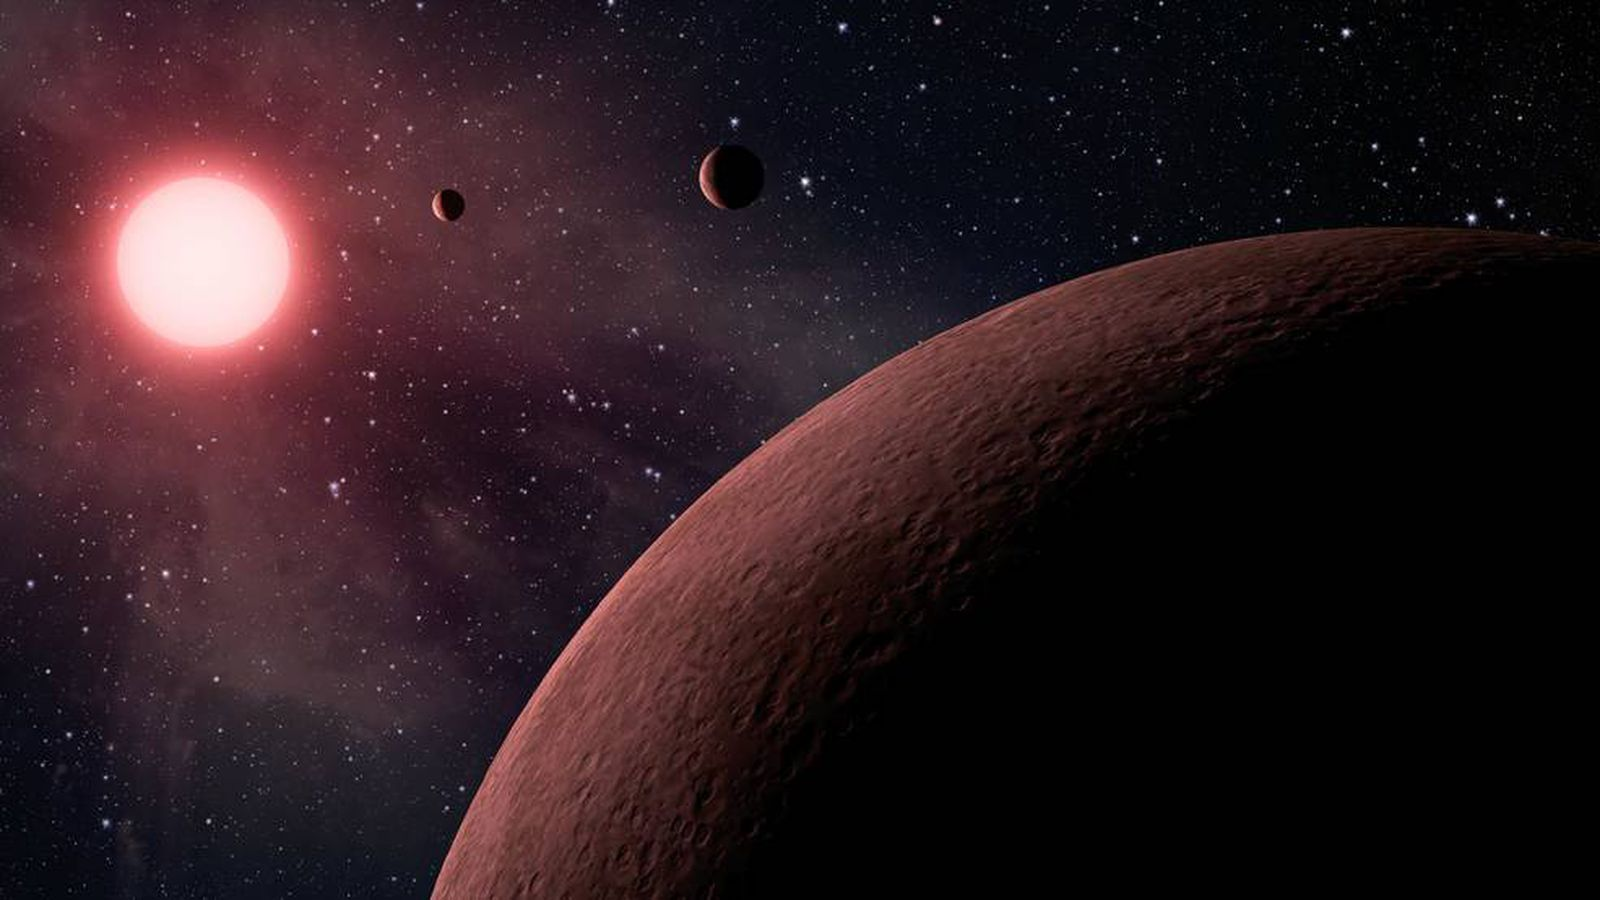 NASA finds evidence of 10 new Earth-sized planets in our corner of the galaxy